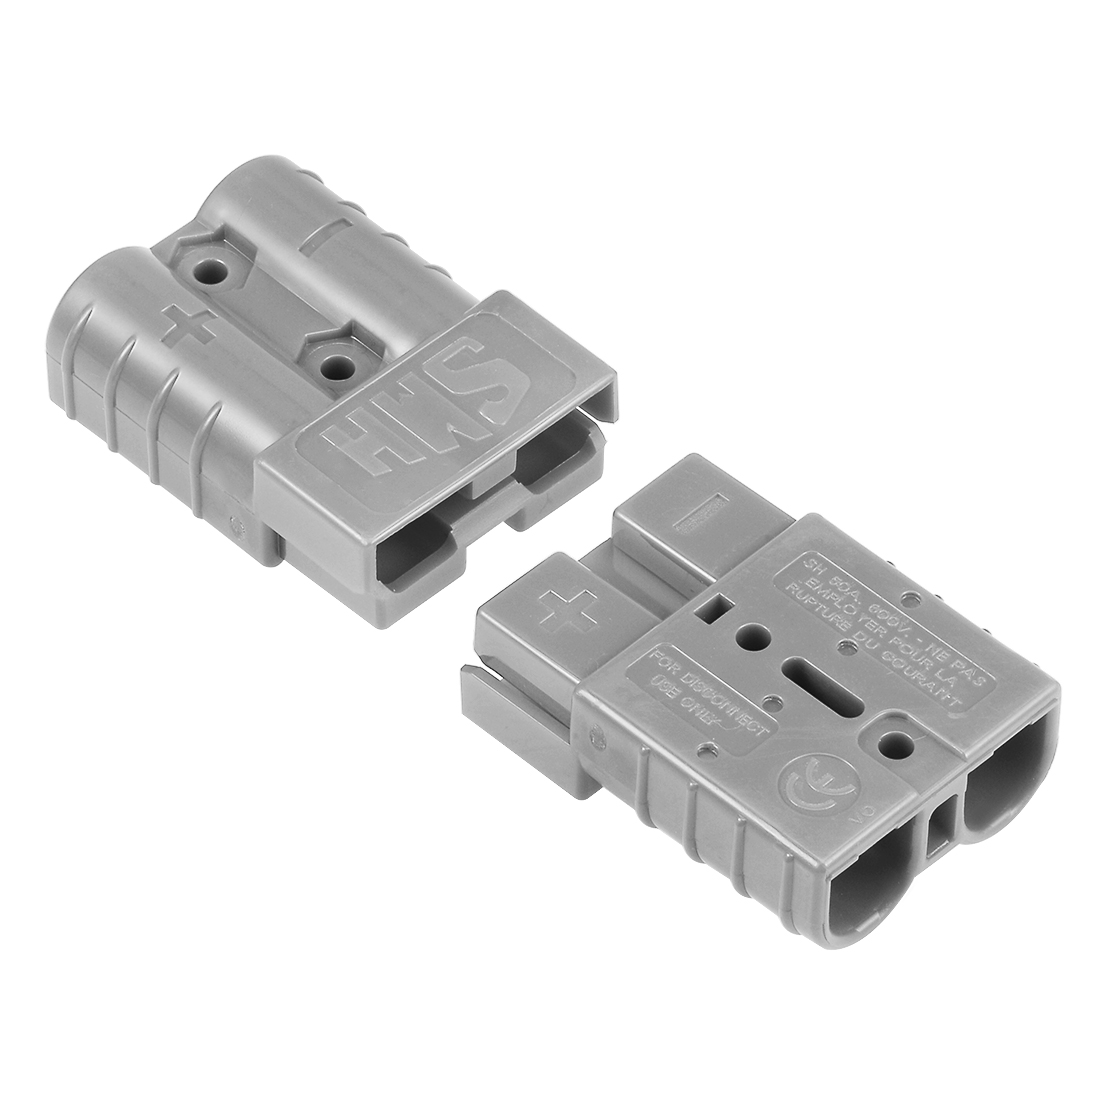 6 Gauge Battery Quick Connect Disconnect 50A Wire Connector, Grey, 2pcs